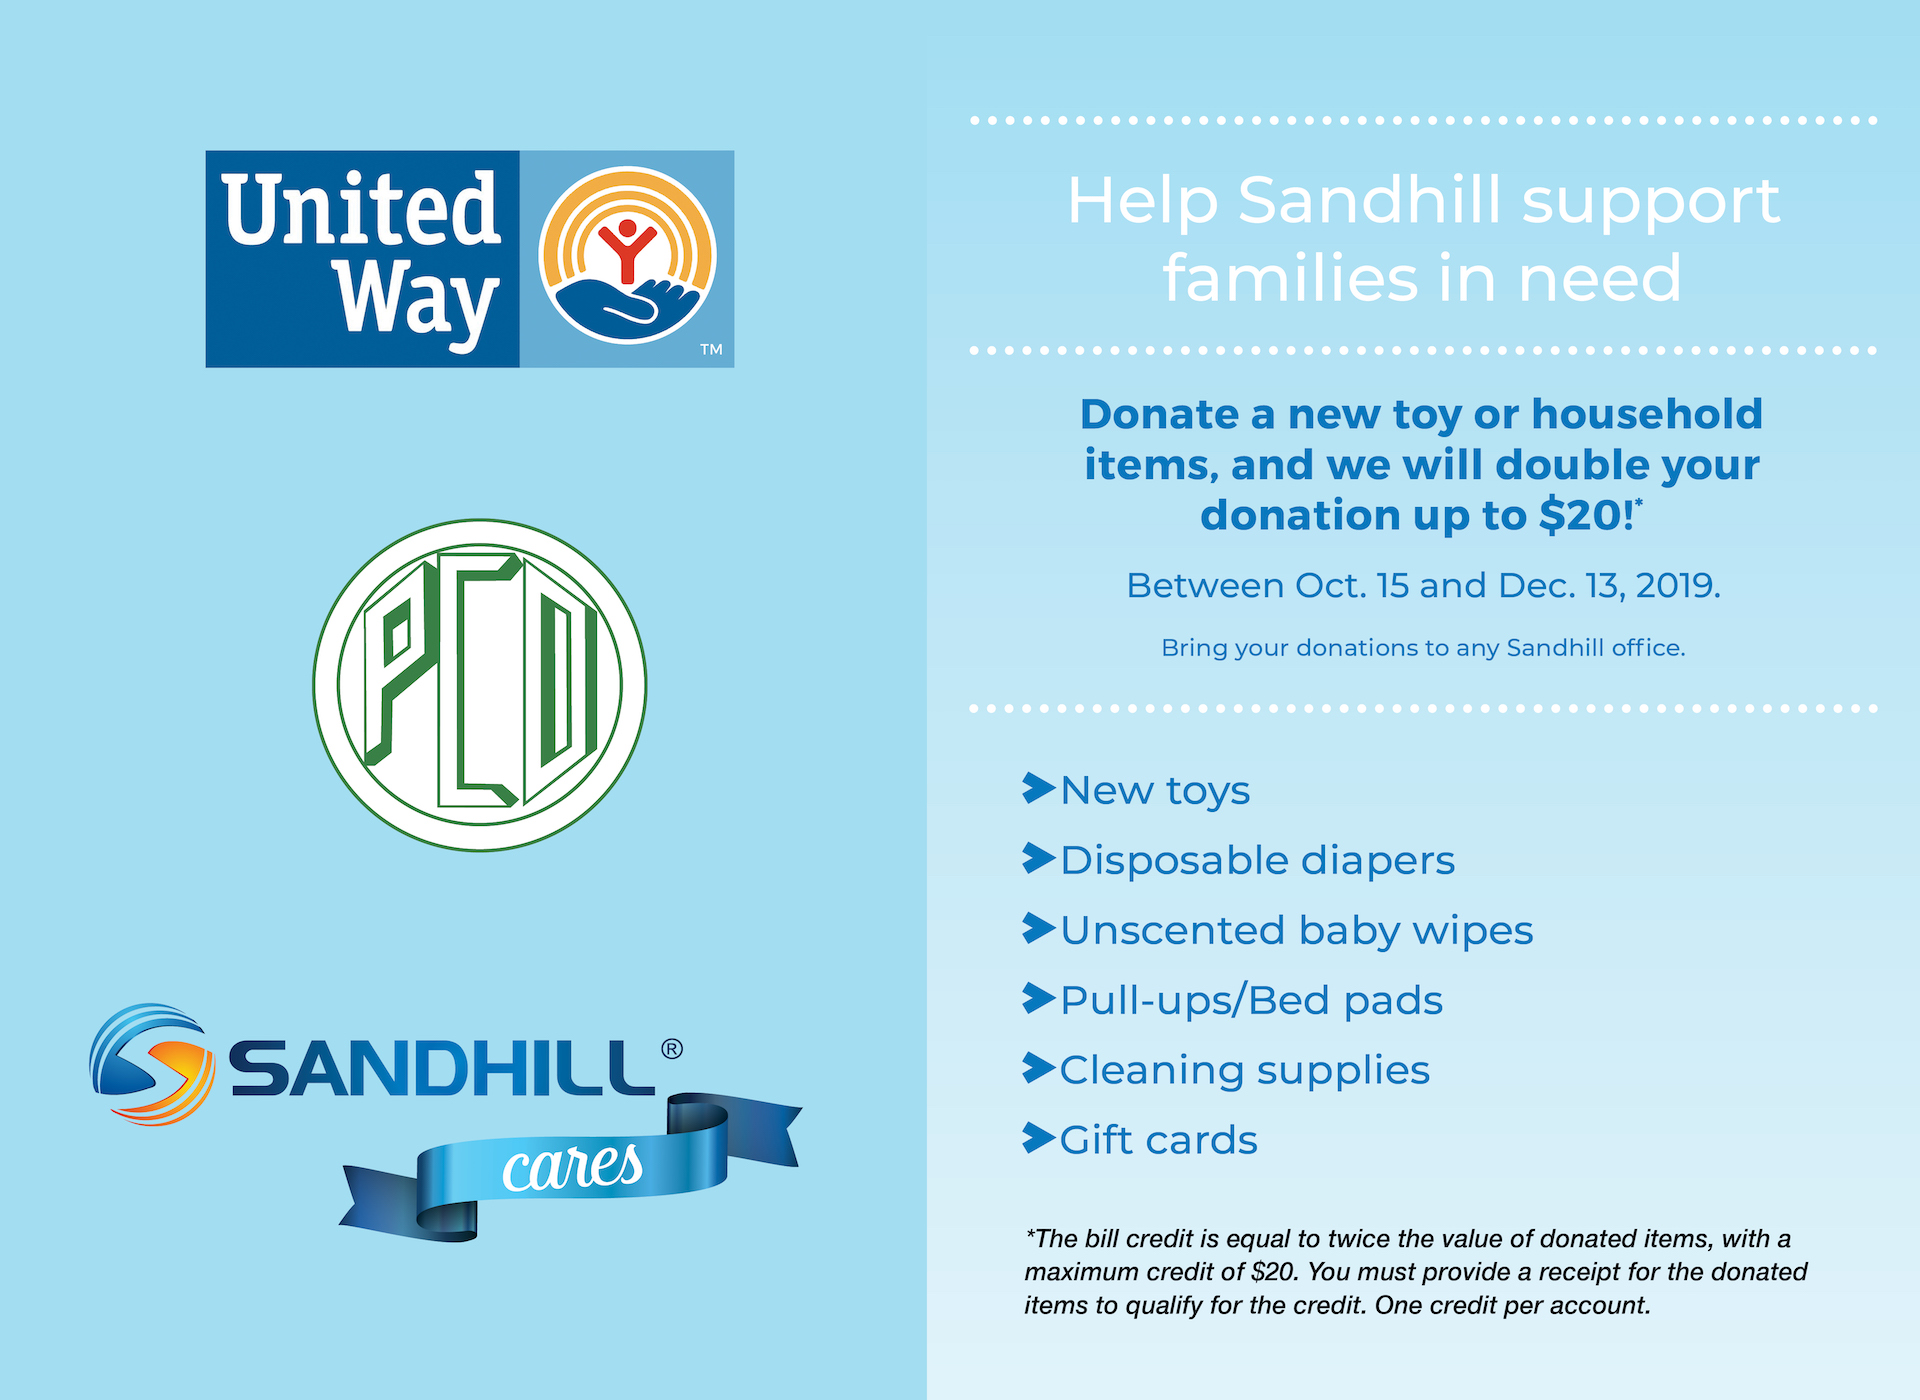 United Way logo. PCD logo. Sandhill Cares logo. Help Sandhill support families in need. Donate a new toy or household items, and we will double your donation up to $20!* Between October 15 and December 13, 2019. Bring your donations to any Sandhill office. New toys, disposable diapers, unscented baby wipes, pull-ups/bed pads, cleaning supplies, gift cards.